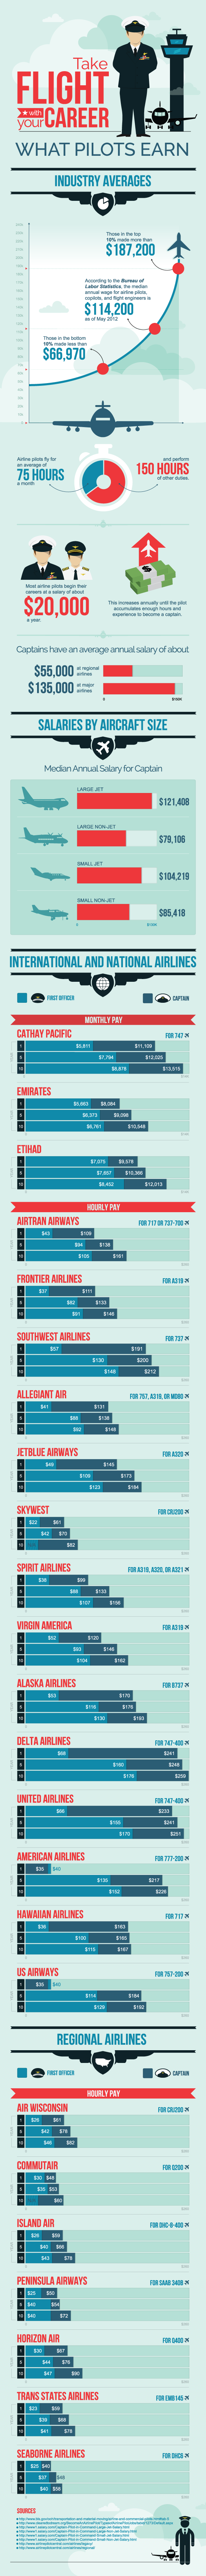 Airline Pilot Salaries Infographic